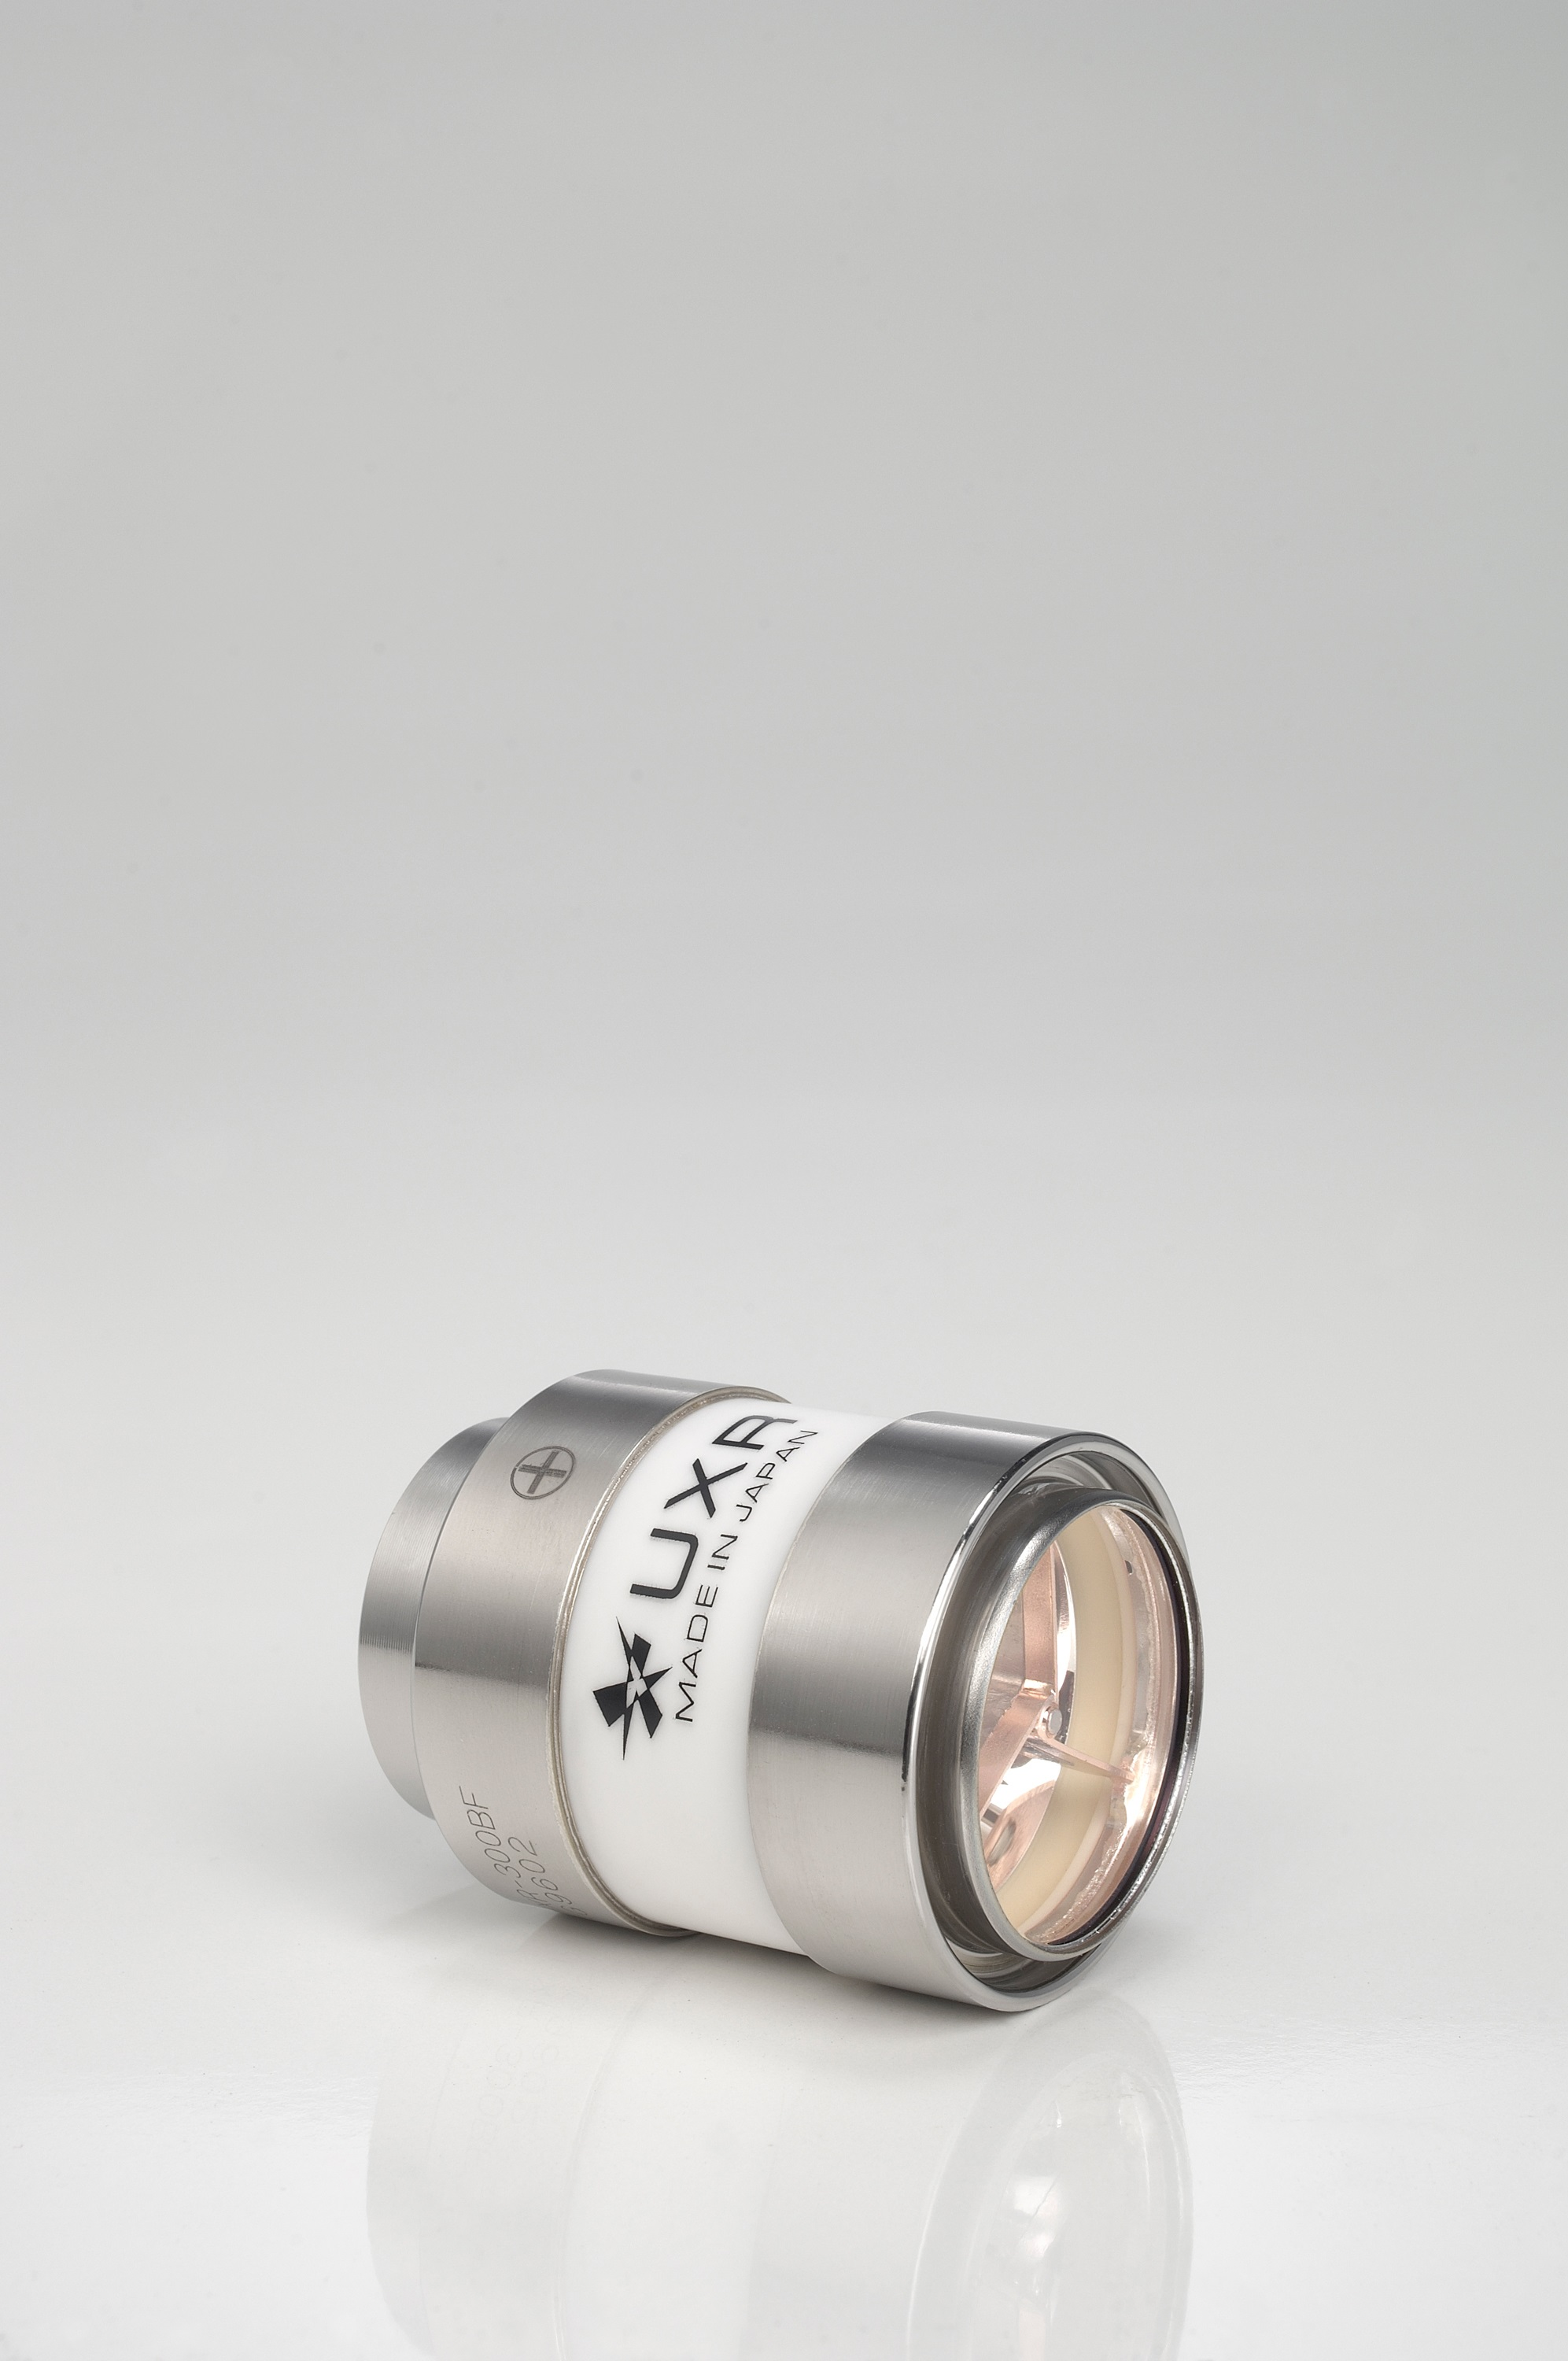 300W Xenon Short-Arc